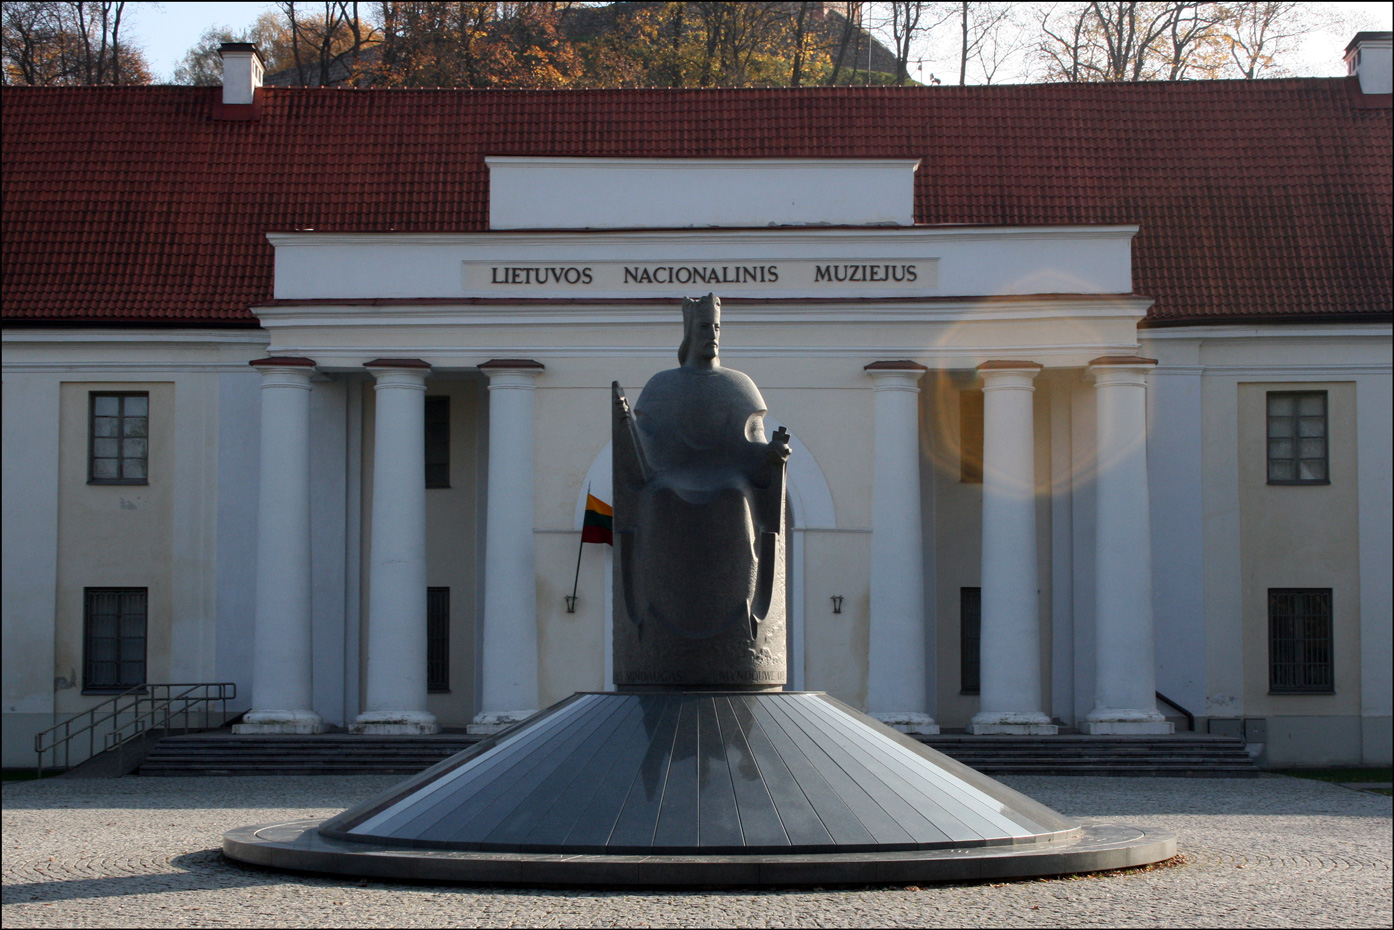 Statue of King Mindaugas at the Lithuanian National Museum